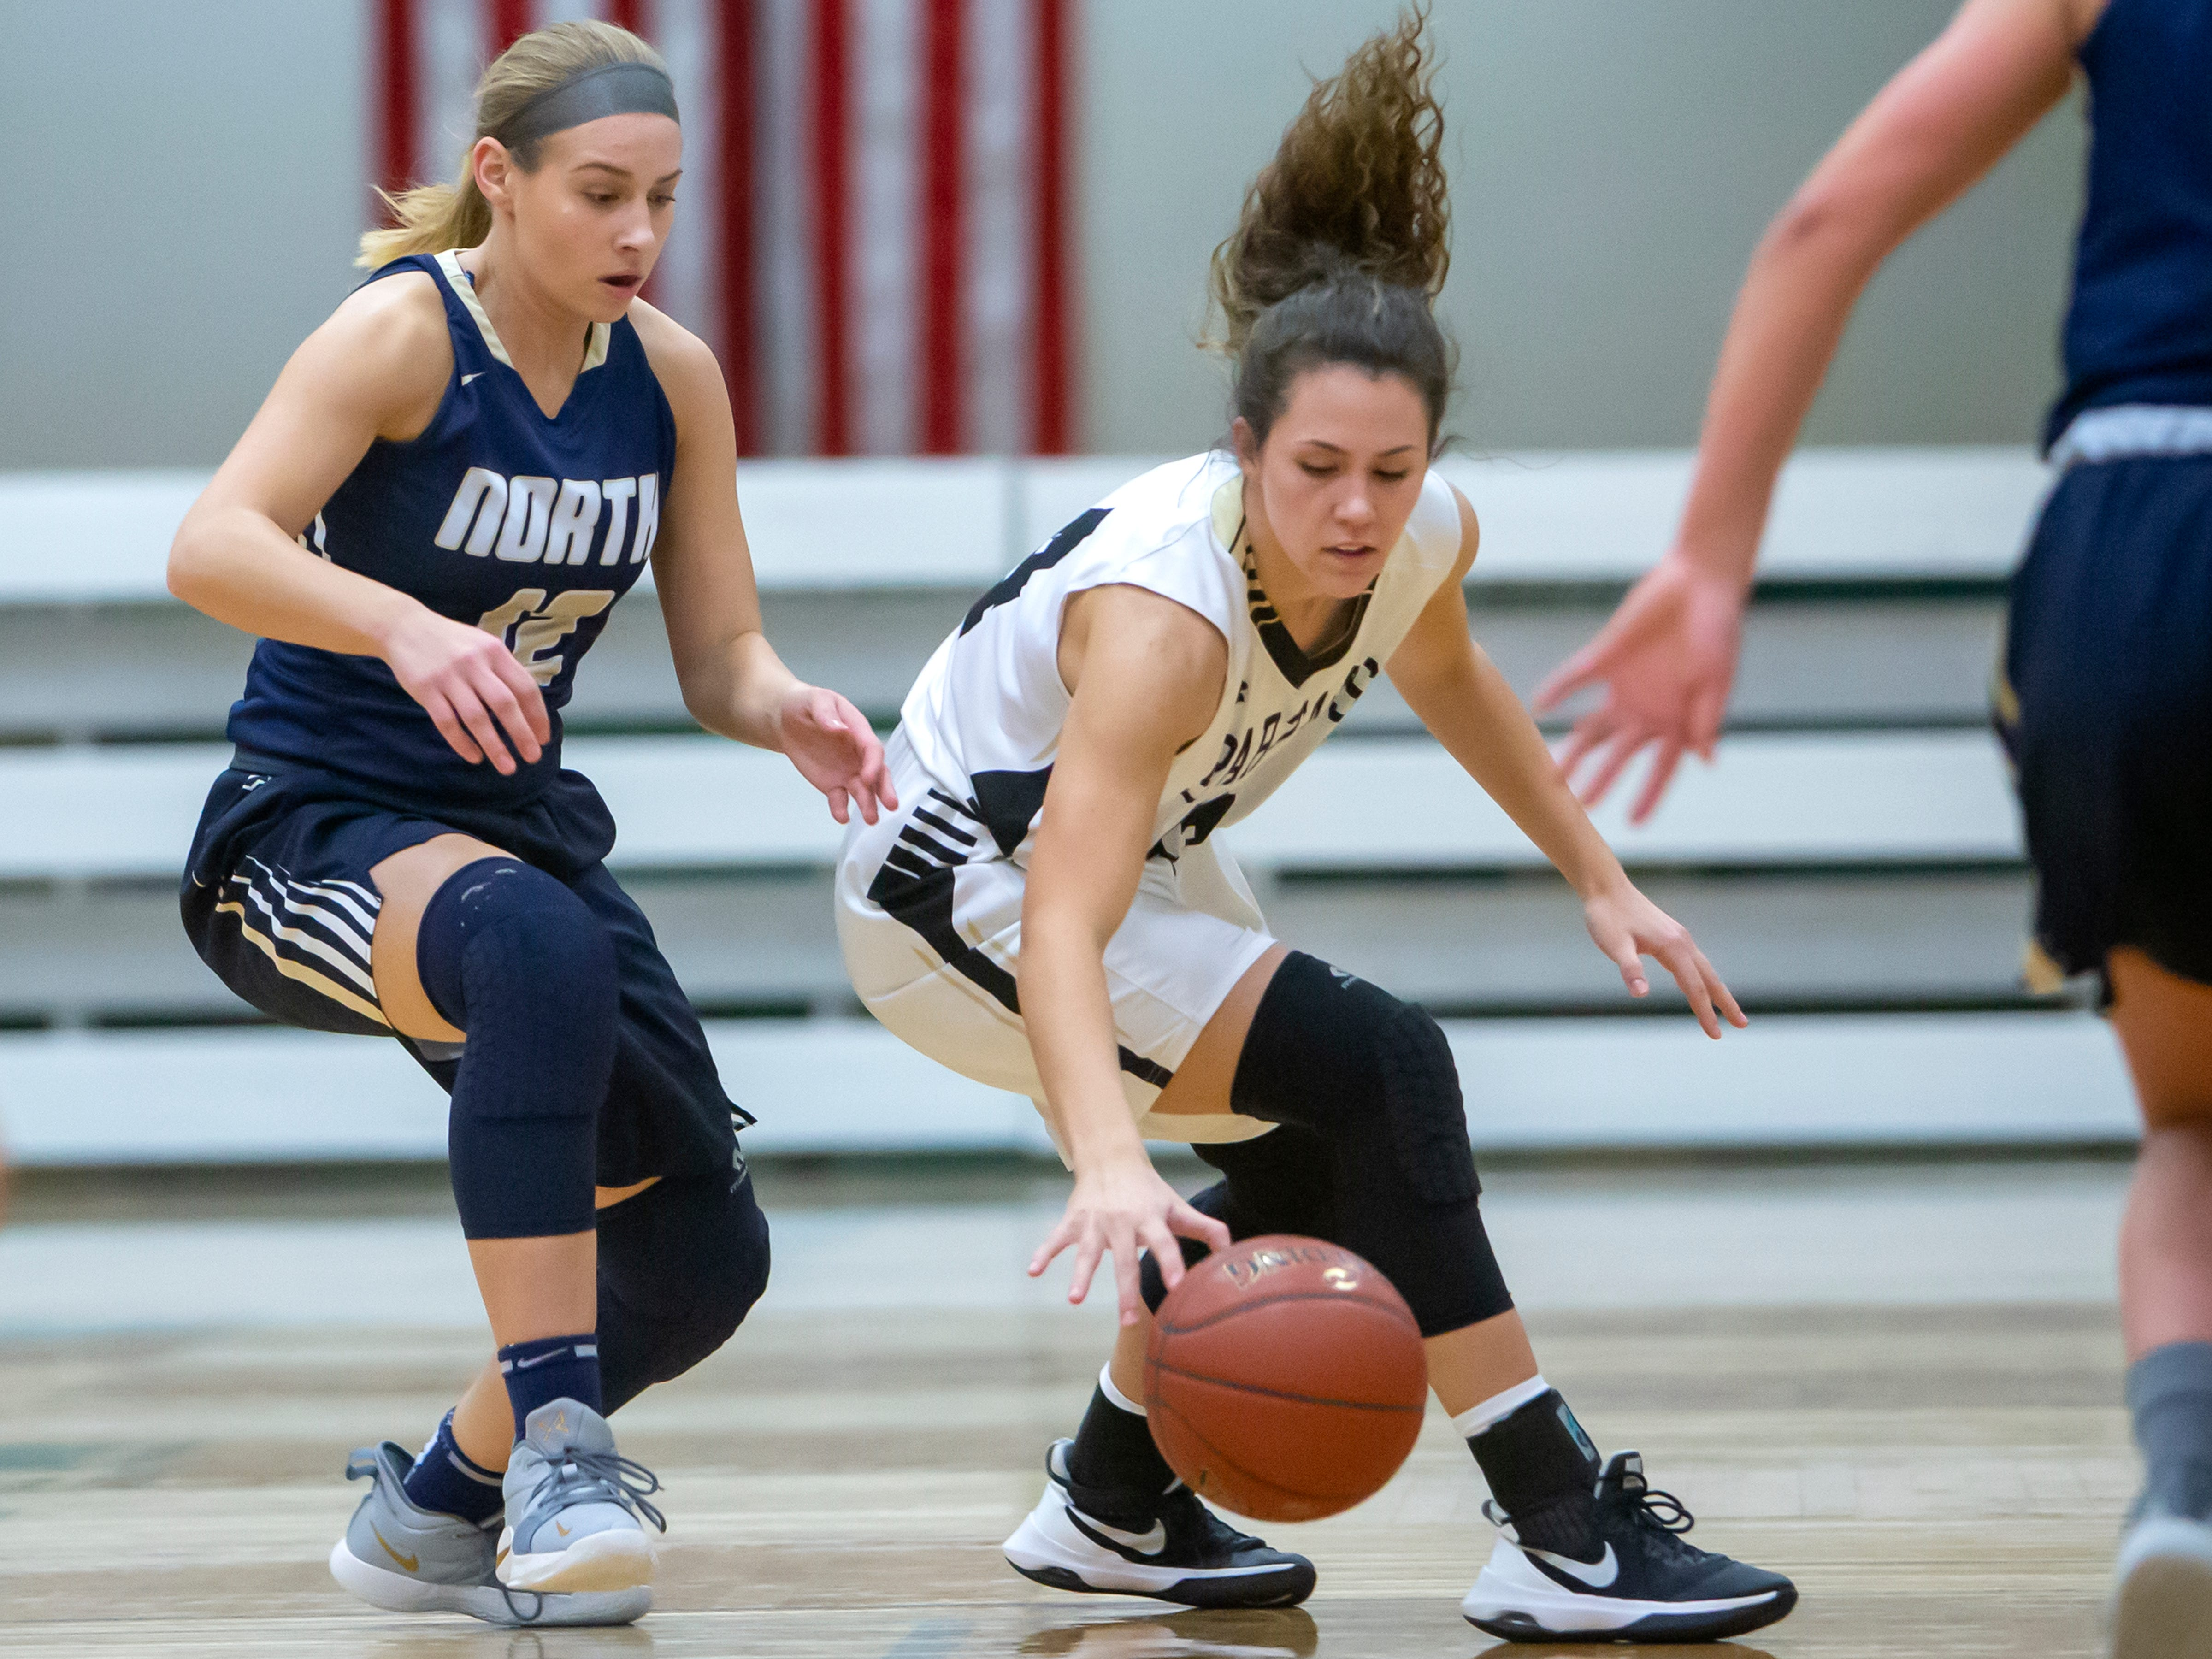 Ilana Milos gains control of a loose ball during a girls basketball Friday game against Appleton North, February 8, 2019, in Oshkosh, Wis., at Oshkosh North High School.